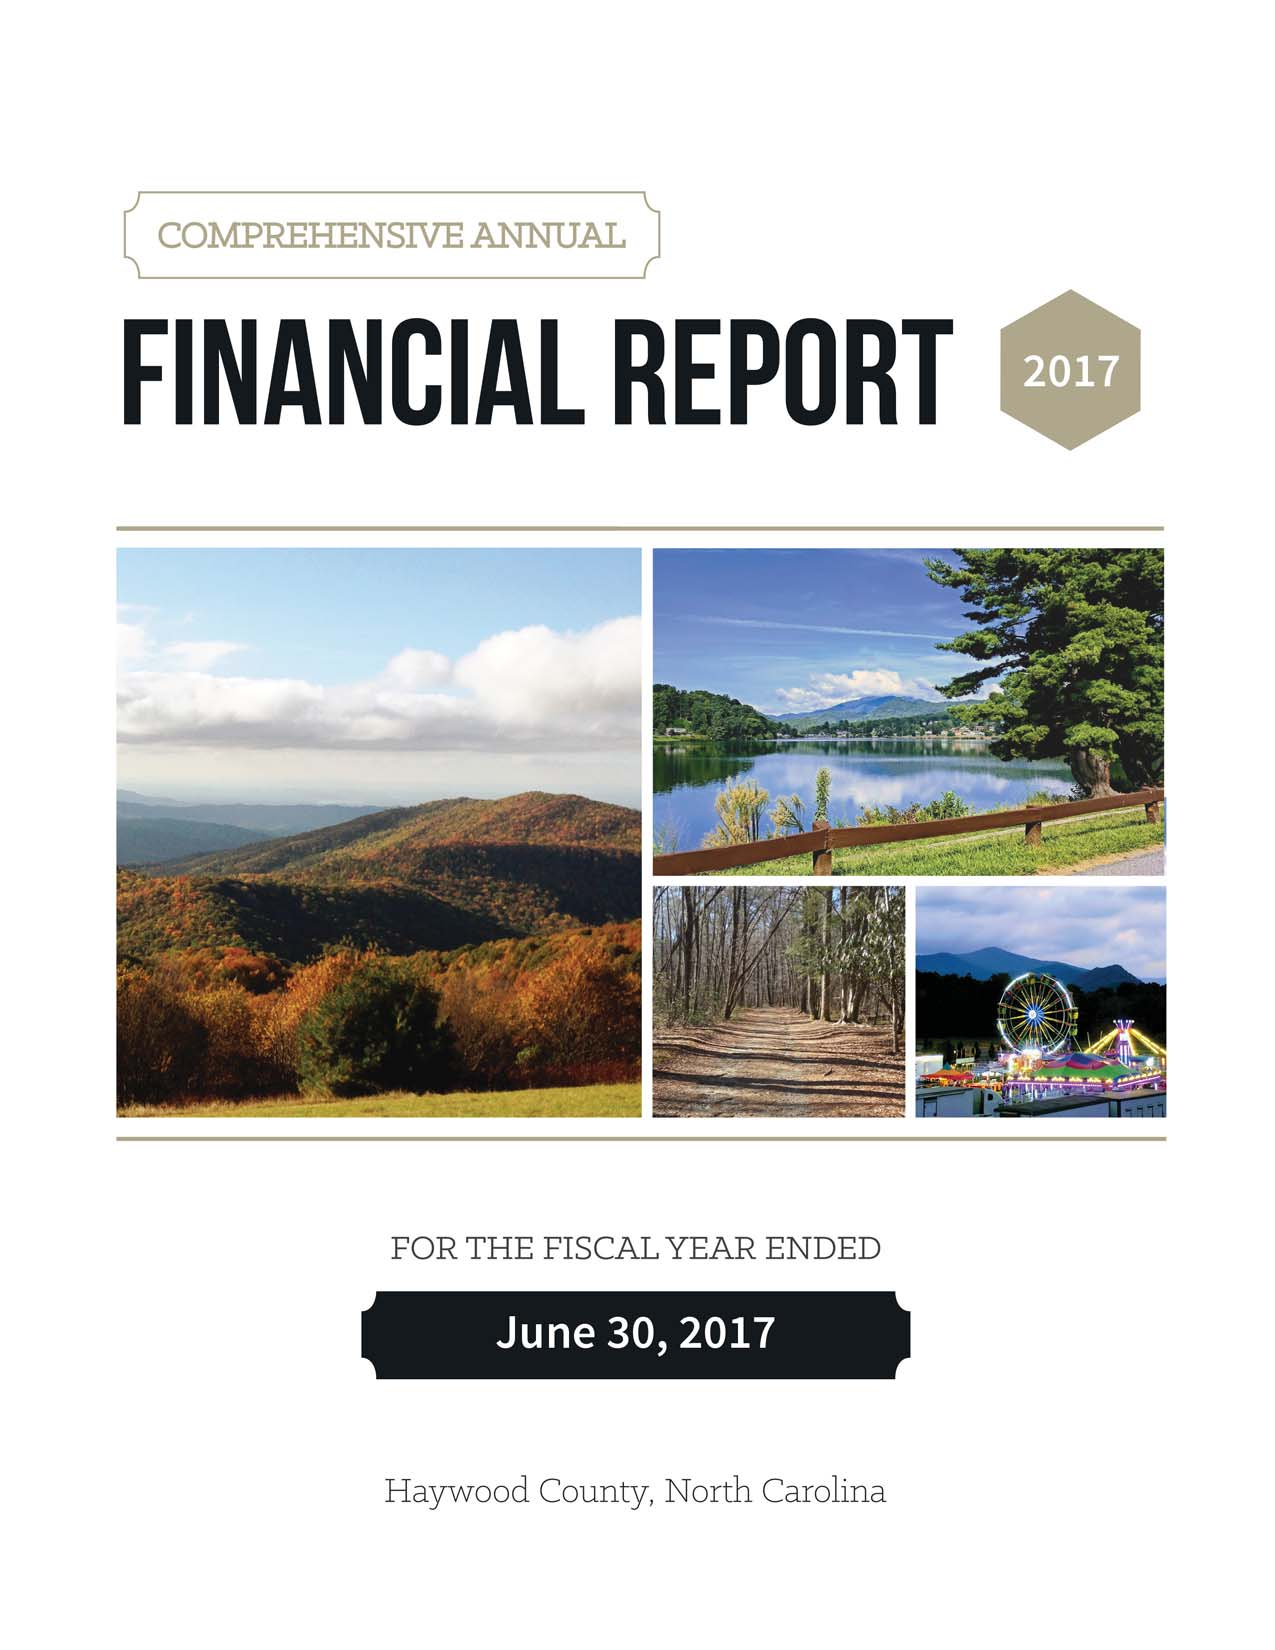 Comprehensive Annual Financial Report 2017 Cover Opens in new window